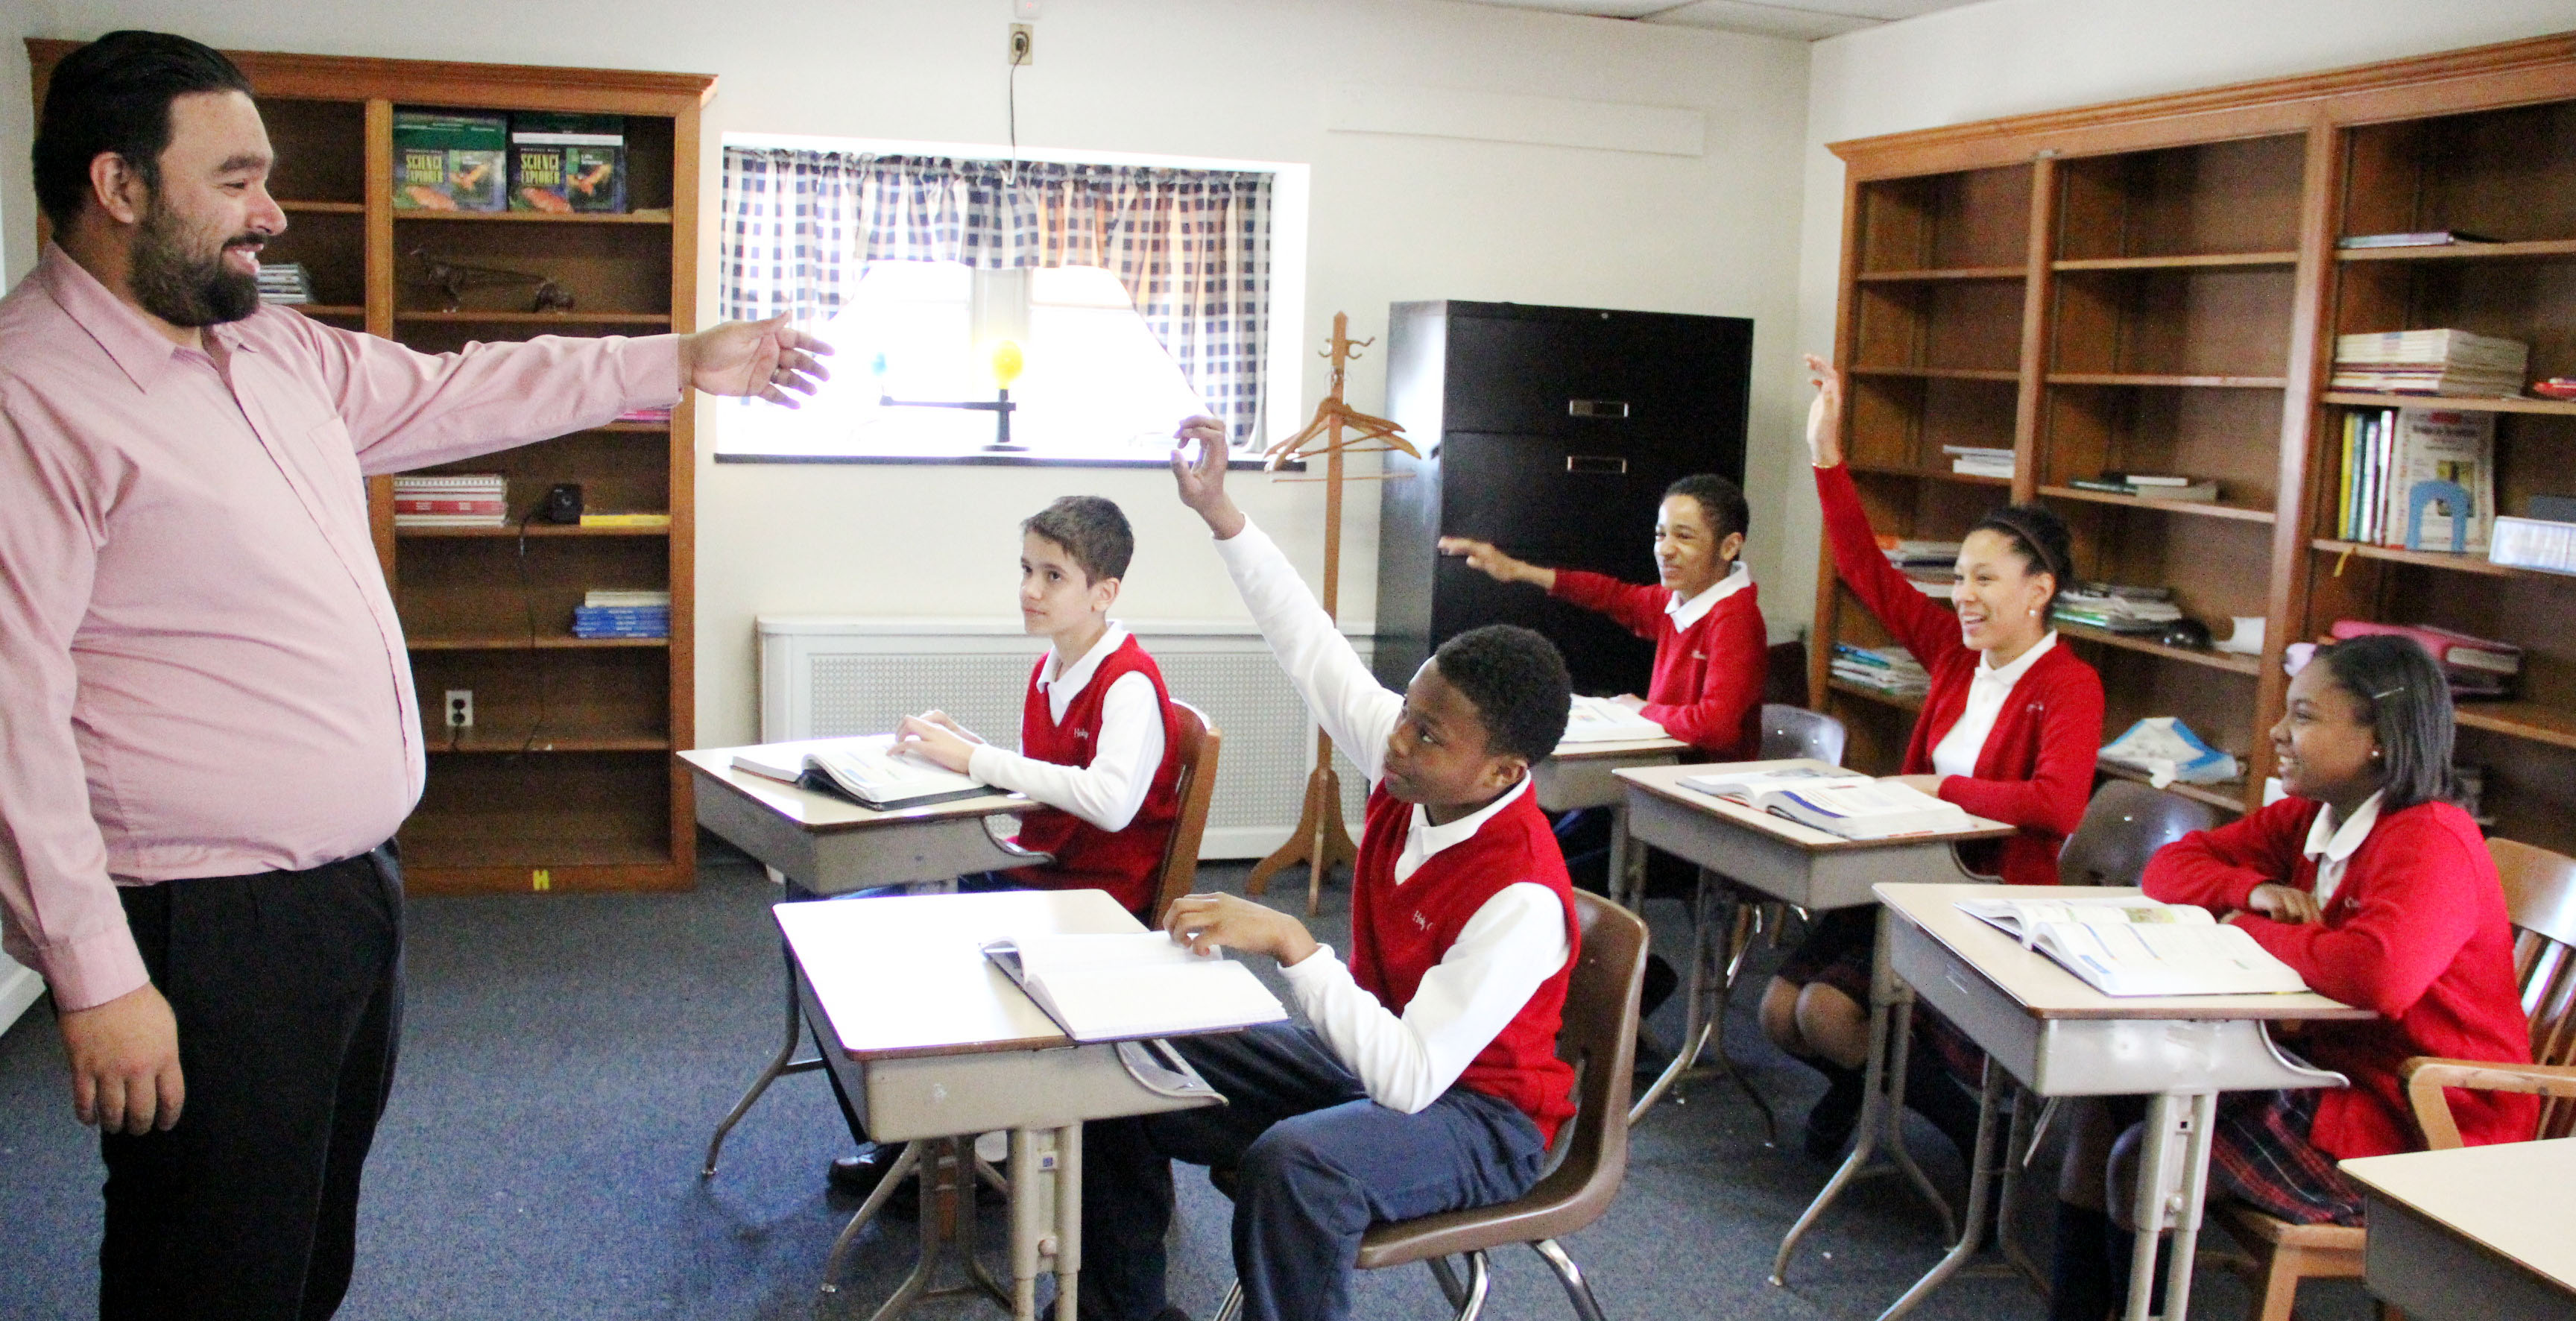 Charles Arroyave (left) teaches Sophia Program students Christopher Peralta, Jarod Thompson, Carl Whittington, Marleen Winterdal, Kaiya Austin April 13 at Holy Cross School in Philadelphia's Mount Airy section. (Sarah Webb)